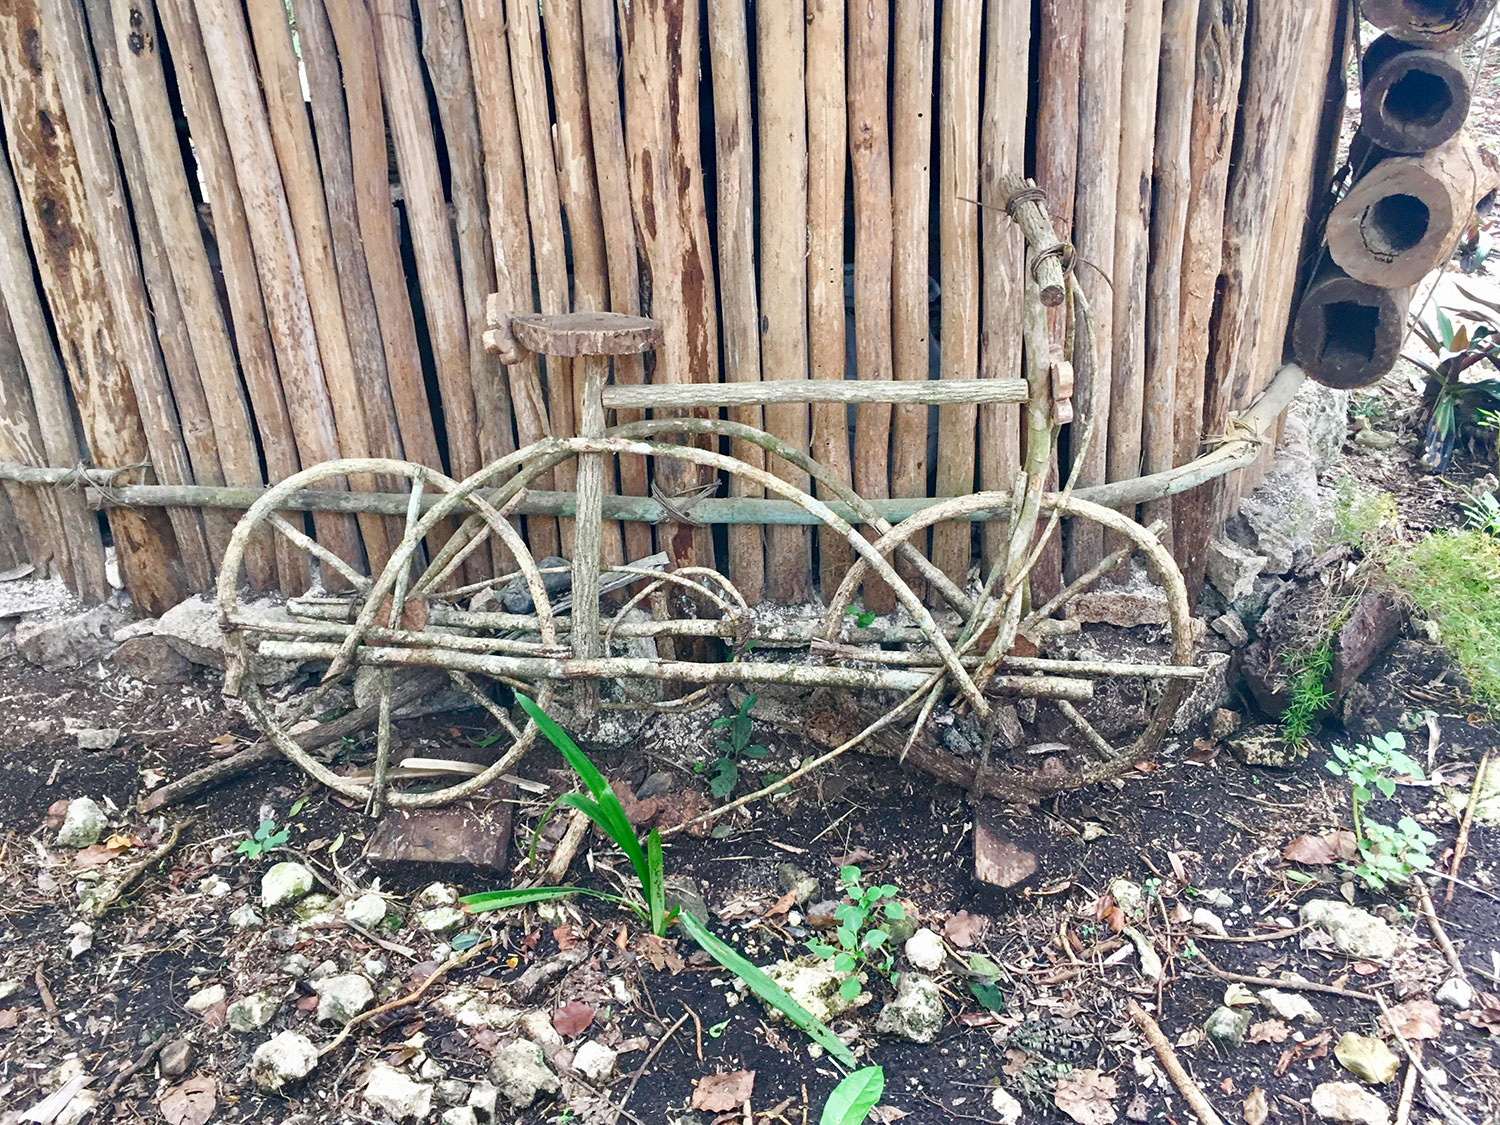 The bicycle is by the house where they display their grandfather's old objects and old ceramics found on their land from the Cobá ruins.